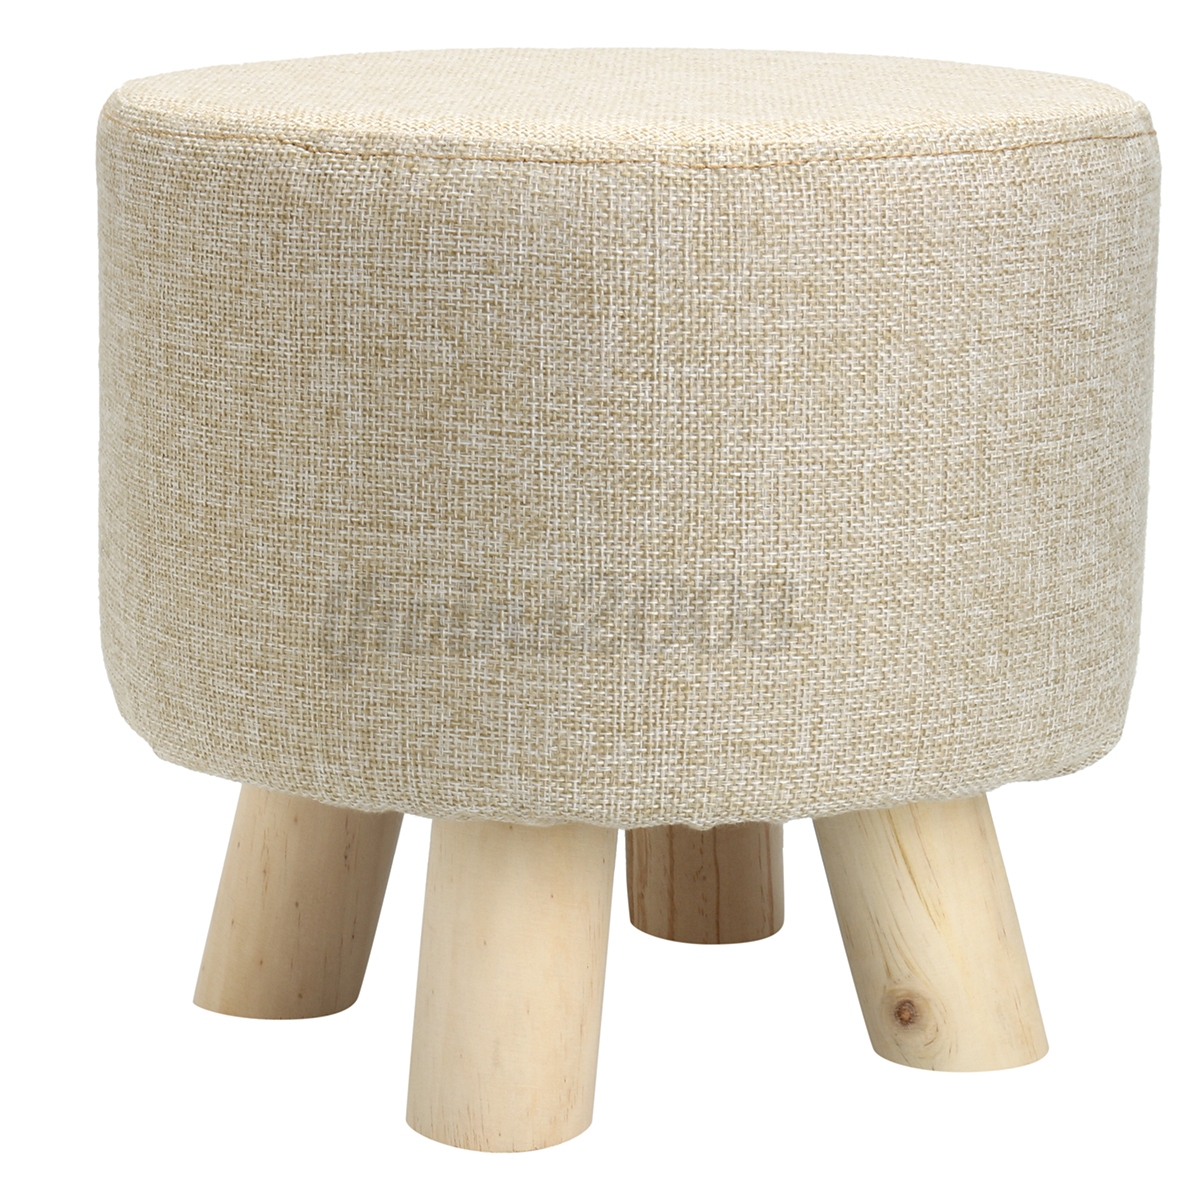 Small Chair With Ottoman Footstool Small Round Wood Pouffe Chair Ottoman Foot Stool